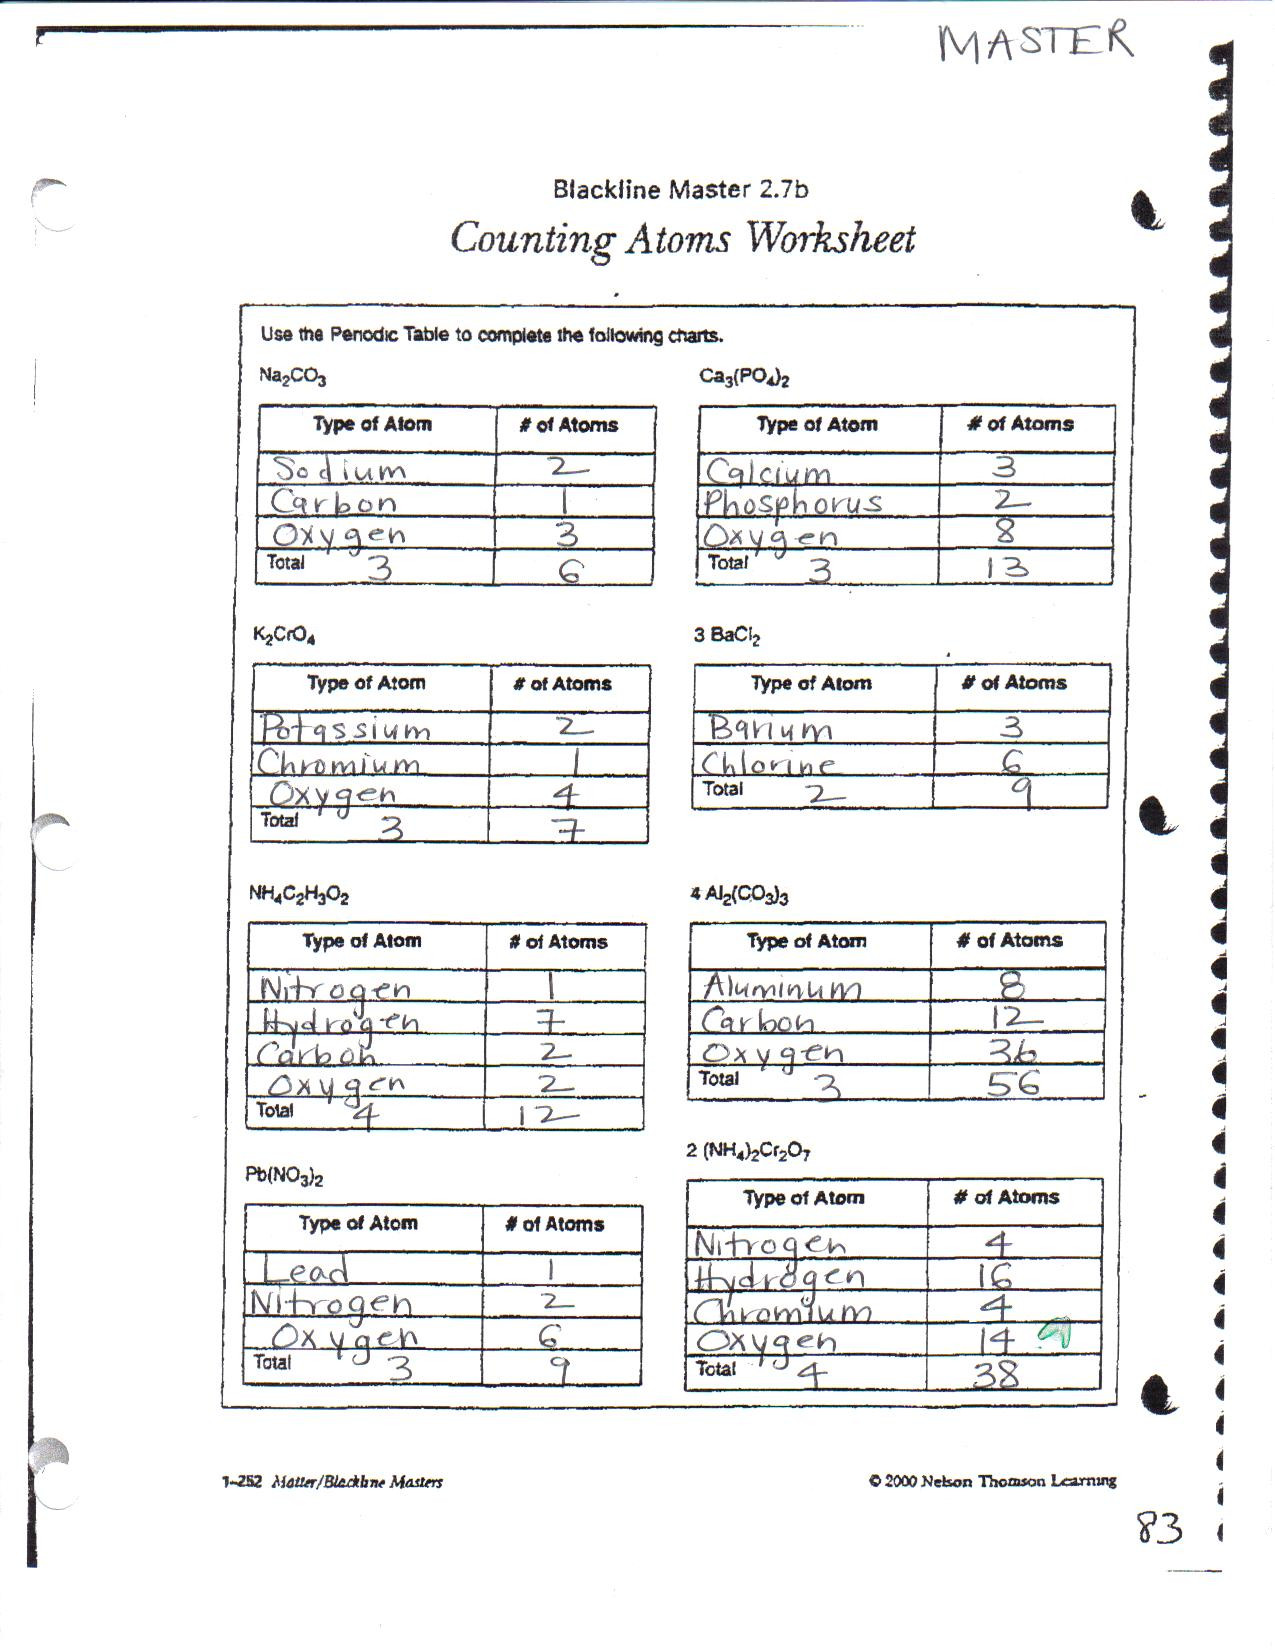 Atom Structure Worksheet Middle School Counting atoms Worksheet